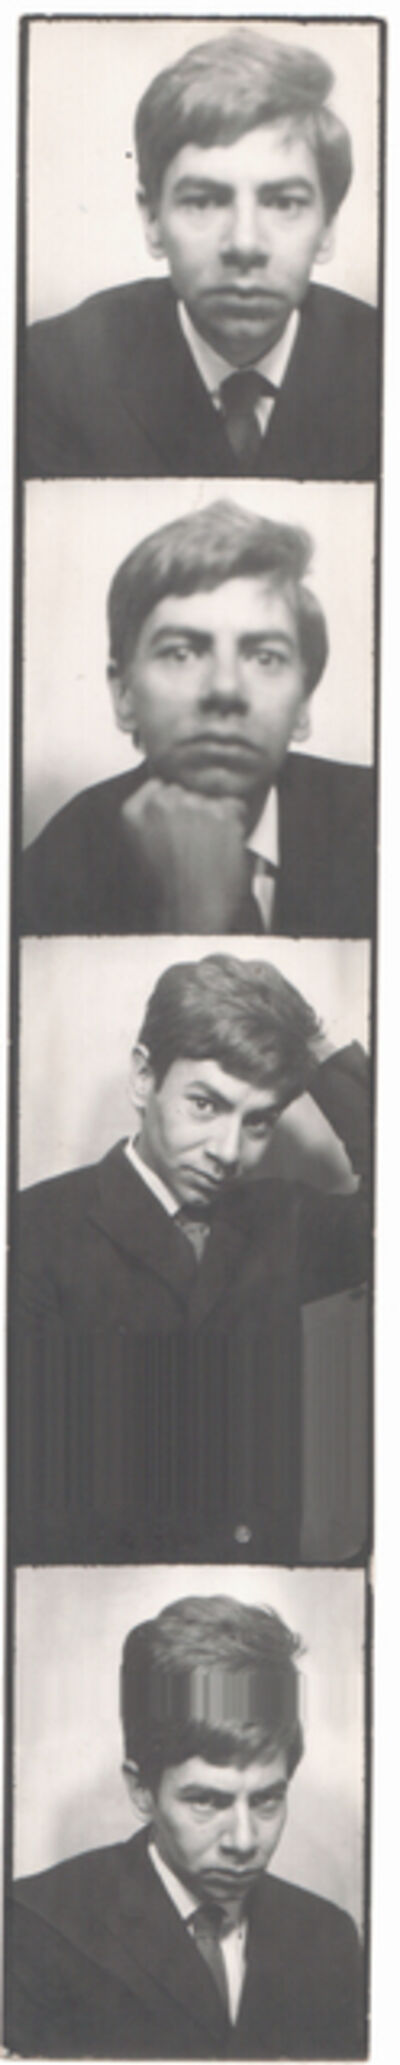 Andy Warhol, 'Unidentified young man', 1964-1967